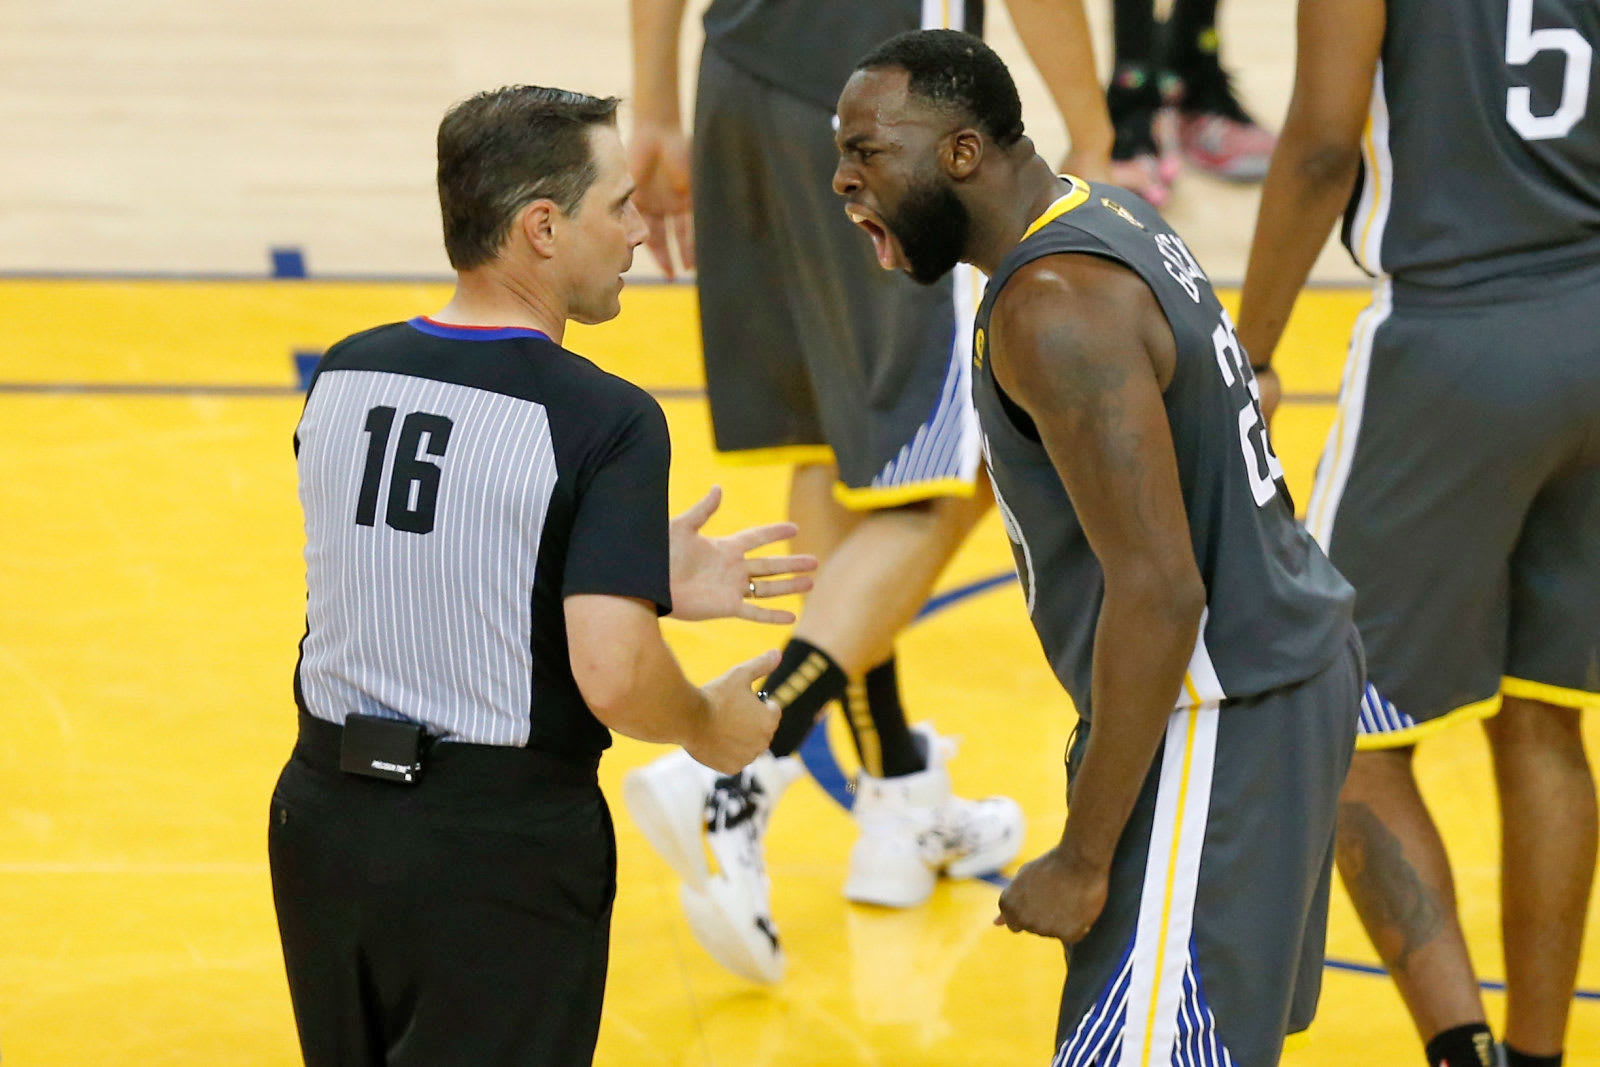 19e43d203 Lachlan Cunningham Getty Images. The next time an NBA referee ...